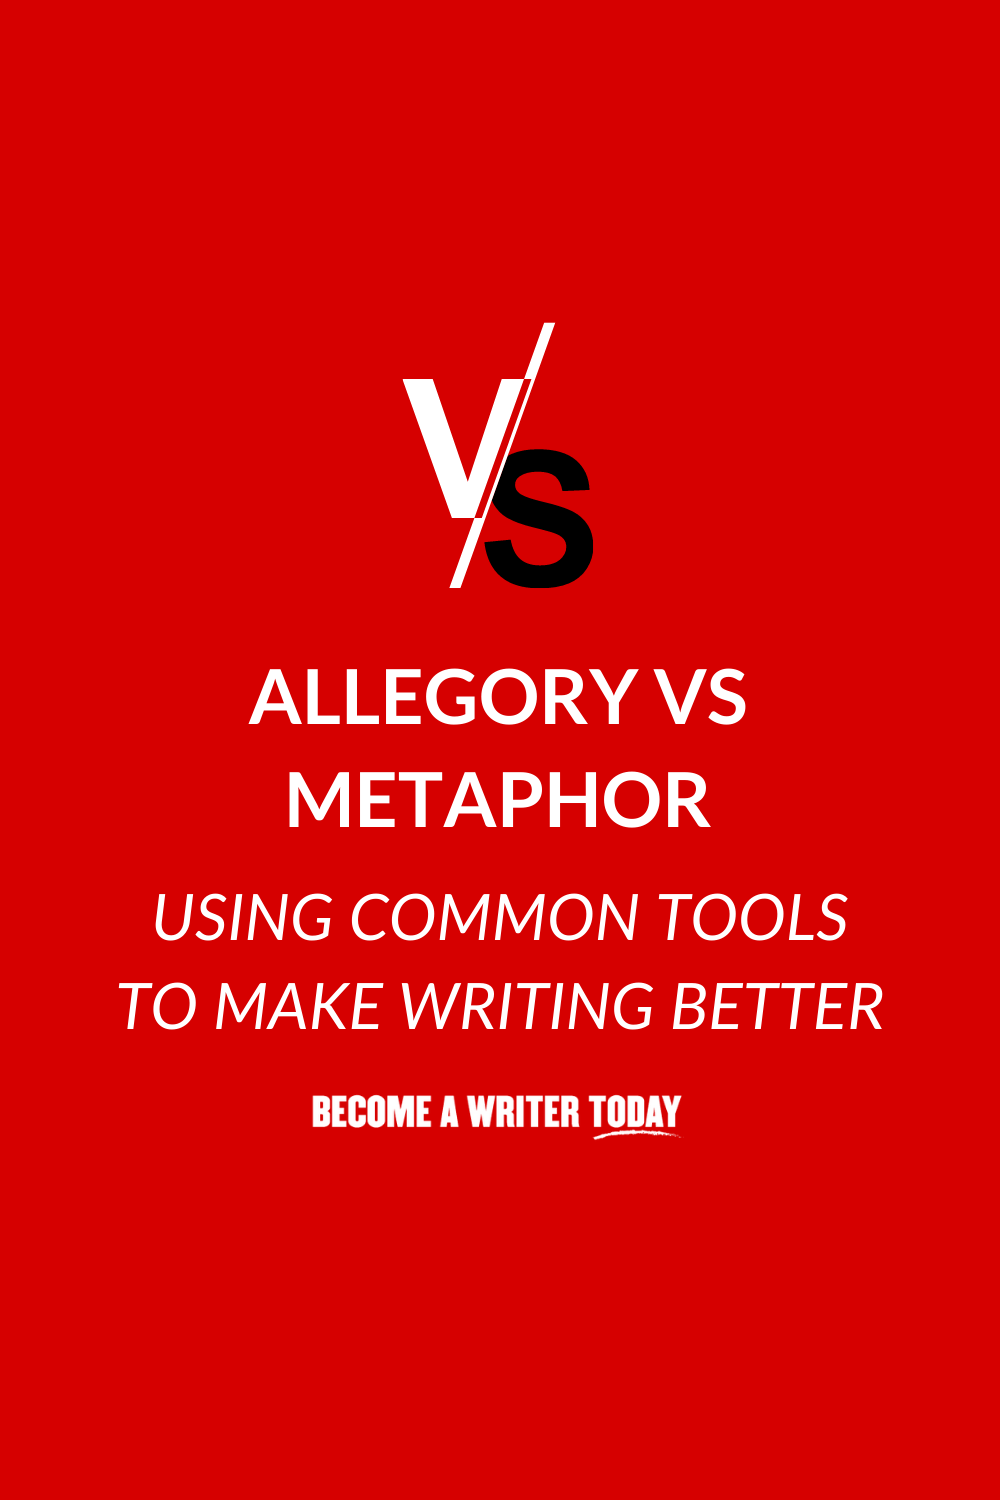 Allegory Vs Metaphor - Using Common Tools to Make Writing Better